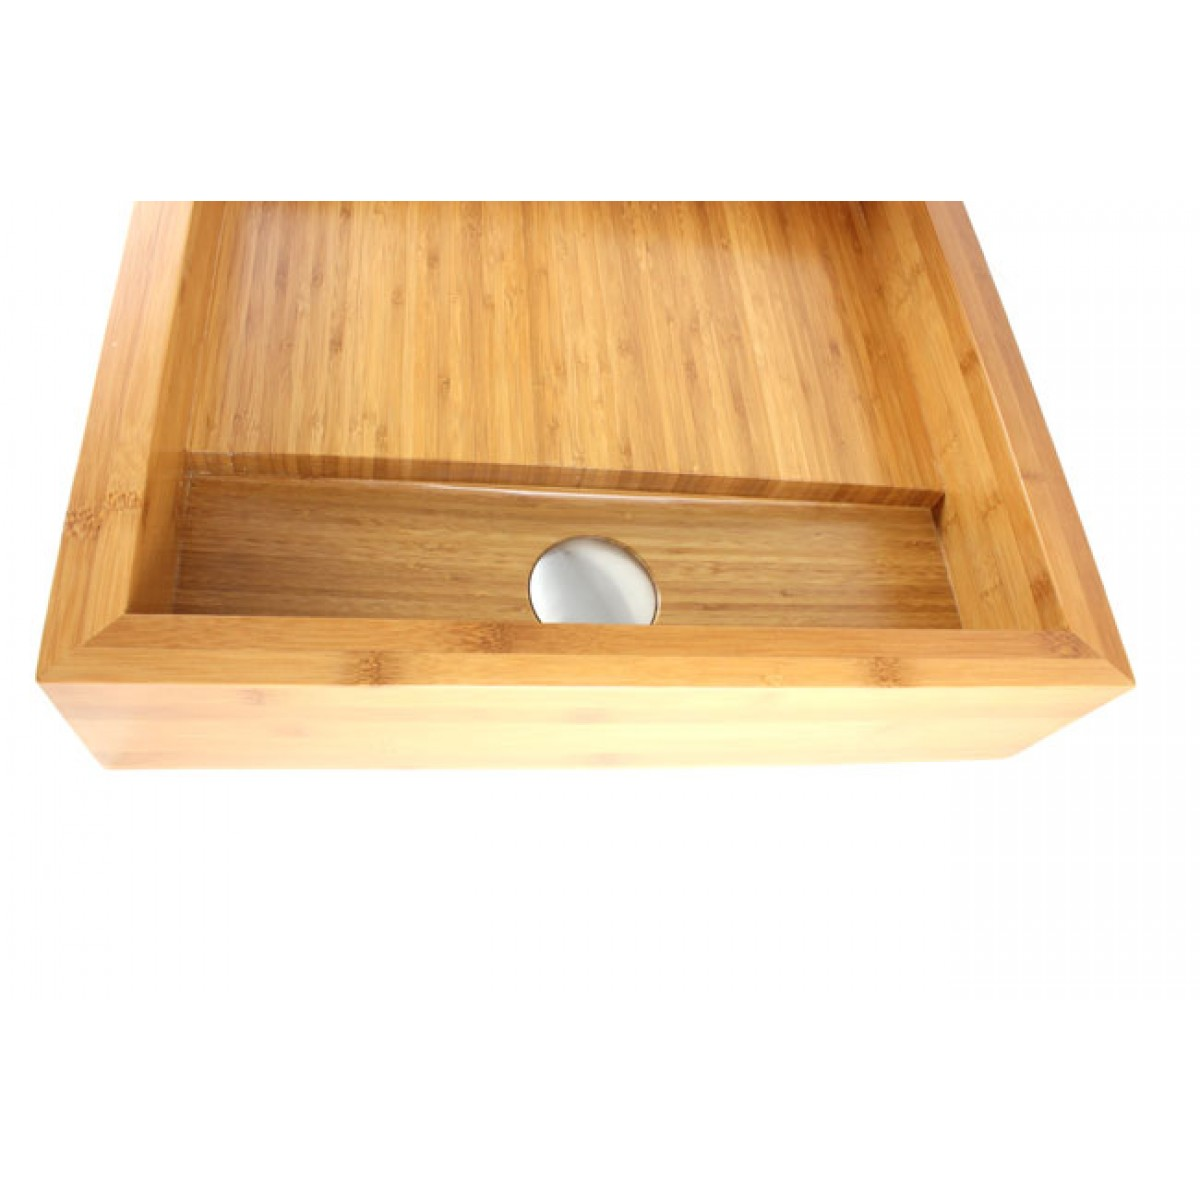 Countertop Height With Vessel Sink : Pure - Bamboo Countertop Bathroom Lavatory Vessel Sink - 19 x 17 x 4-1 ...